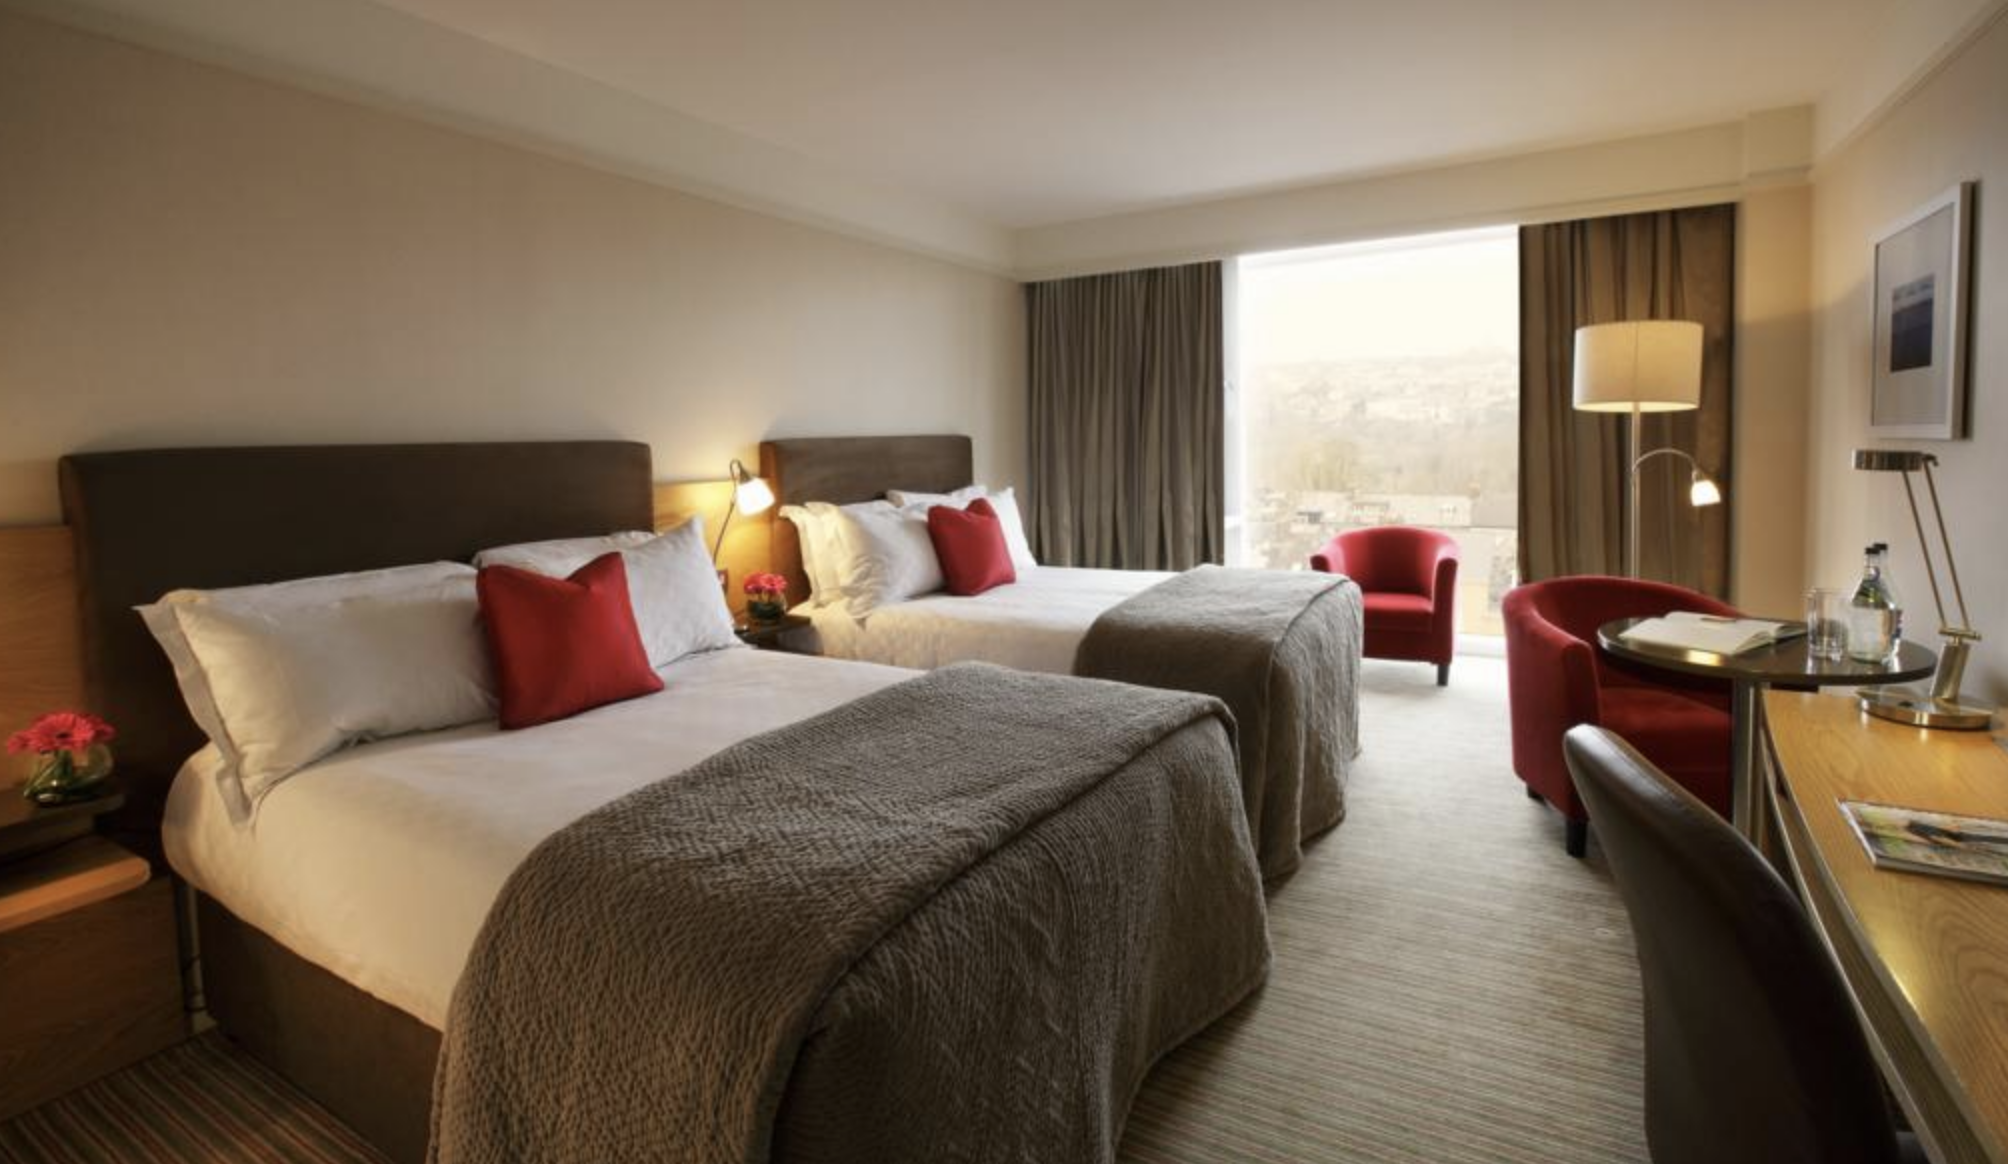 HOTELS - Dublin:Camden Court HotelConfirmation:620522864Family Room, 2 beds, nonsmokingCork:Radisson Blu Hotel and Spa, CorkConfirmation:73217481012331BR Suite 2 beds, nonsmoking(breakfast included)Kilarney:Old Weir LodgeConfirmation:7321748922082Superior Triple Room, Private Bathroom3 Twin beds, nonsmoking(breakfast included)Newmarket on Fergus:Inn at DromolandConfirmation:7321749820412Family Room, 1 Bedroom1 Double Bed and 2 Twin Beds, nonsmokingGalway:Menlo Park HotelConfirmation:7321750568020Classic Twin Room1 Queen Bed and 1 Twin Bed, nonsmoking(breakfast included)Coleraine (Northern Ireland):The Lodge HotelConfirmation:7321751200548Family Room1 King Bed, nonsmoking(breakfast included)Dublin:Holiday Inn Express Dublin AirportConfirmation:73217516041061 Double Bed with Sofa bed1 Double Bed and 1 Double Sofa Bed, nonsmoking(breakfast included)